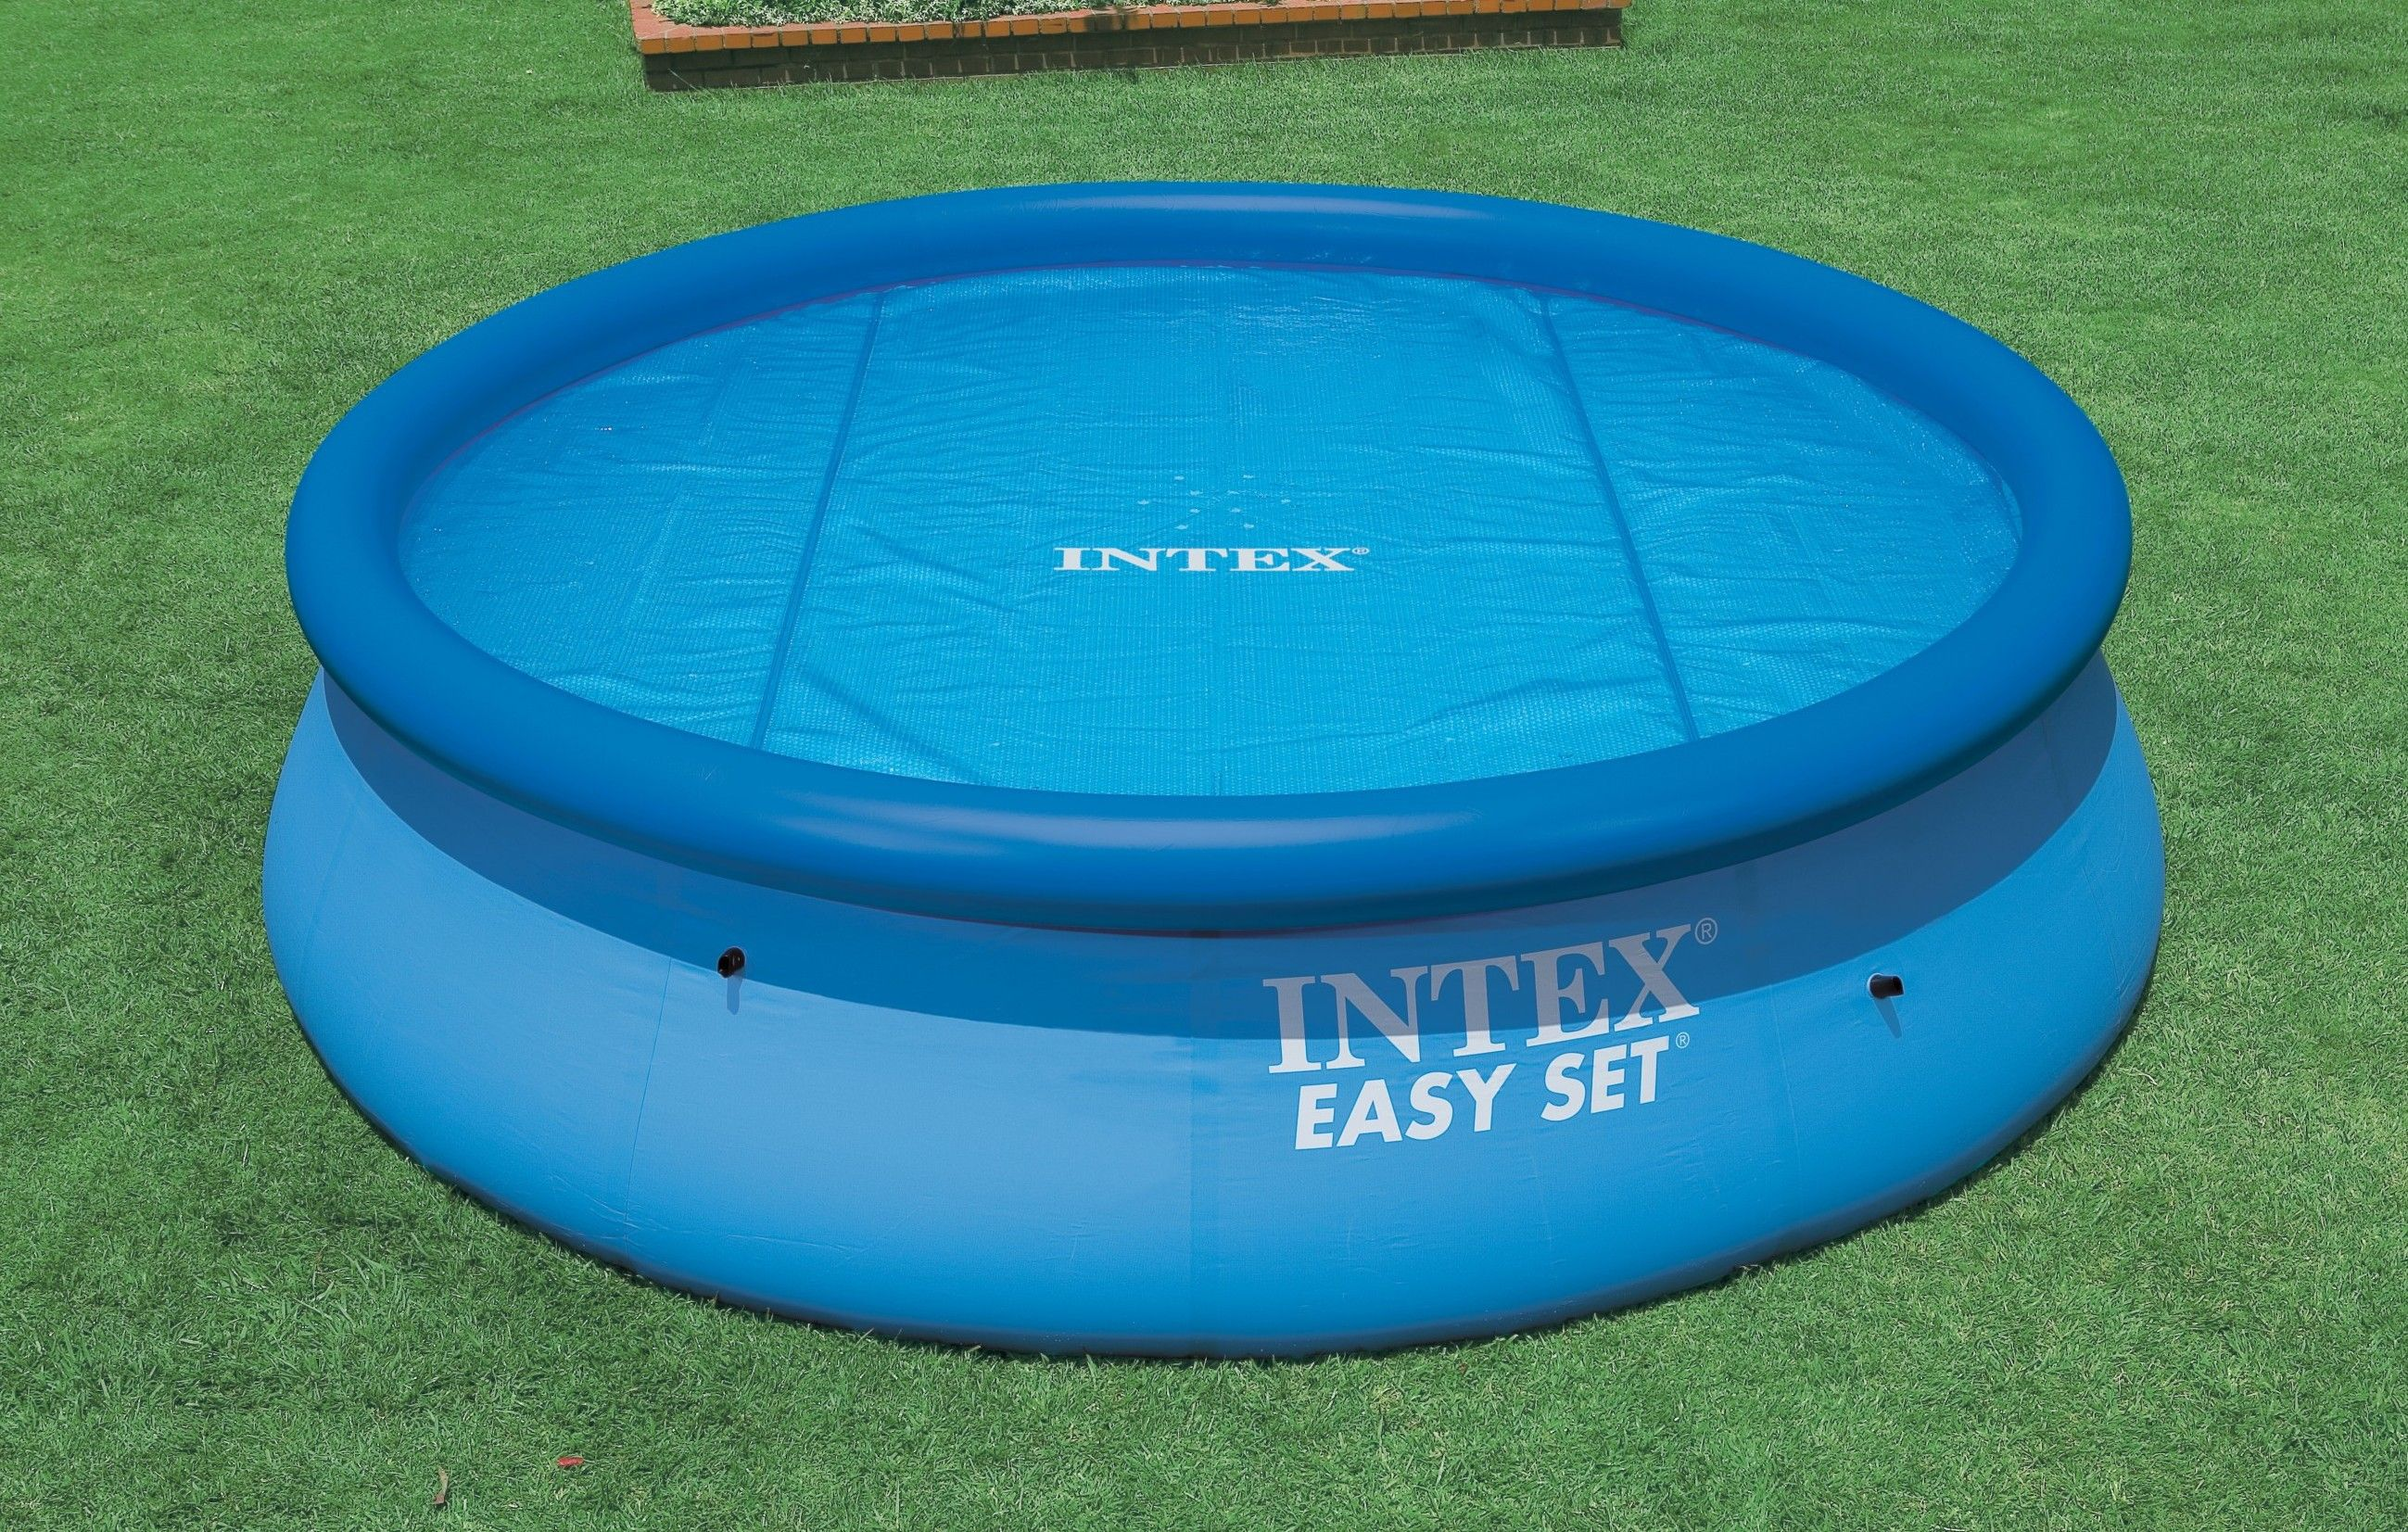 Solarplane Pool Intex 305 Intex Pool Poolfolie Ersatzfolie Für Intex Easy Frame Pools